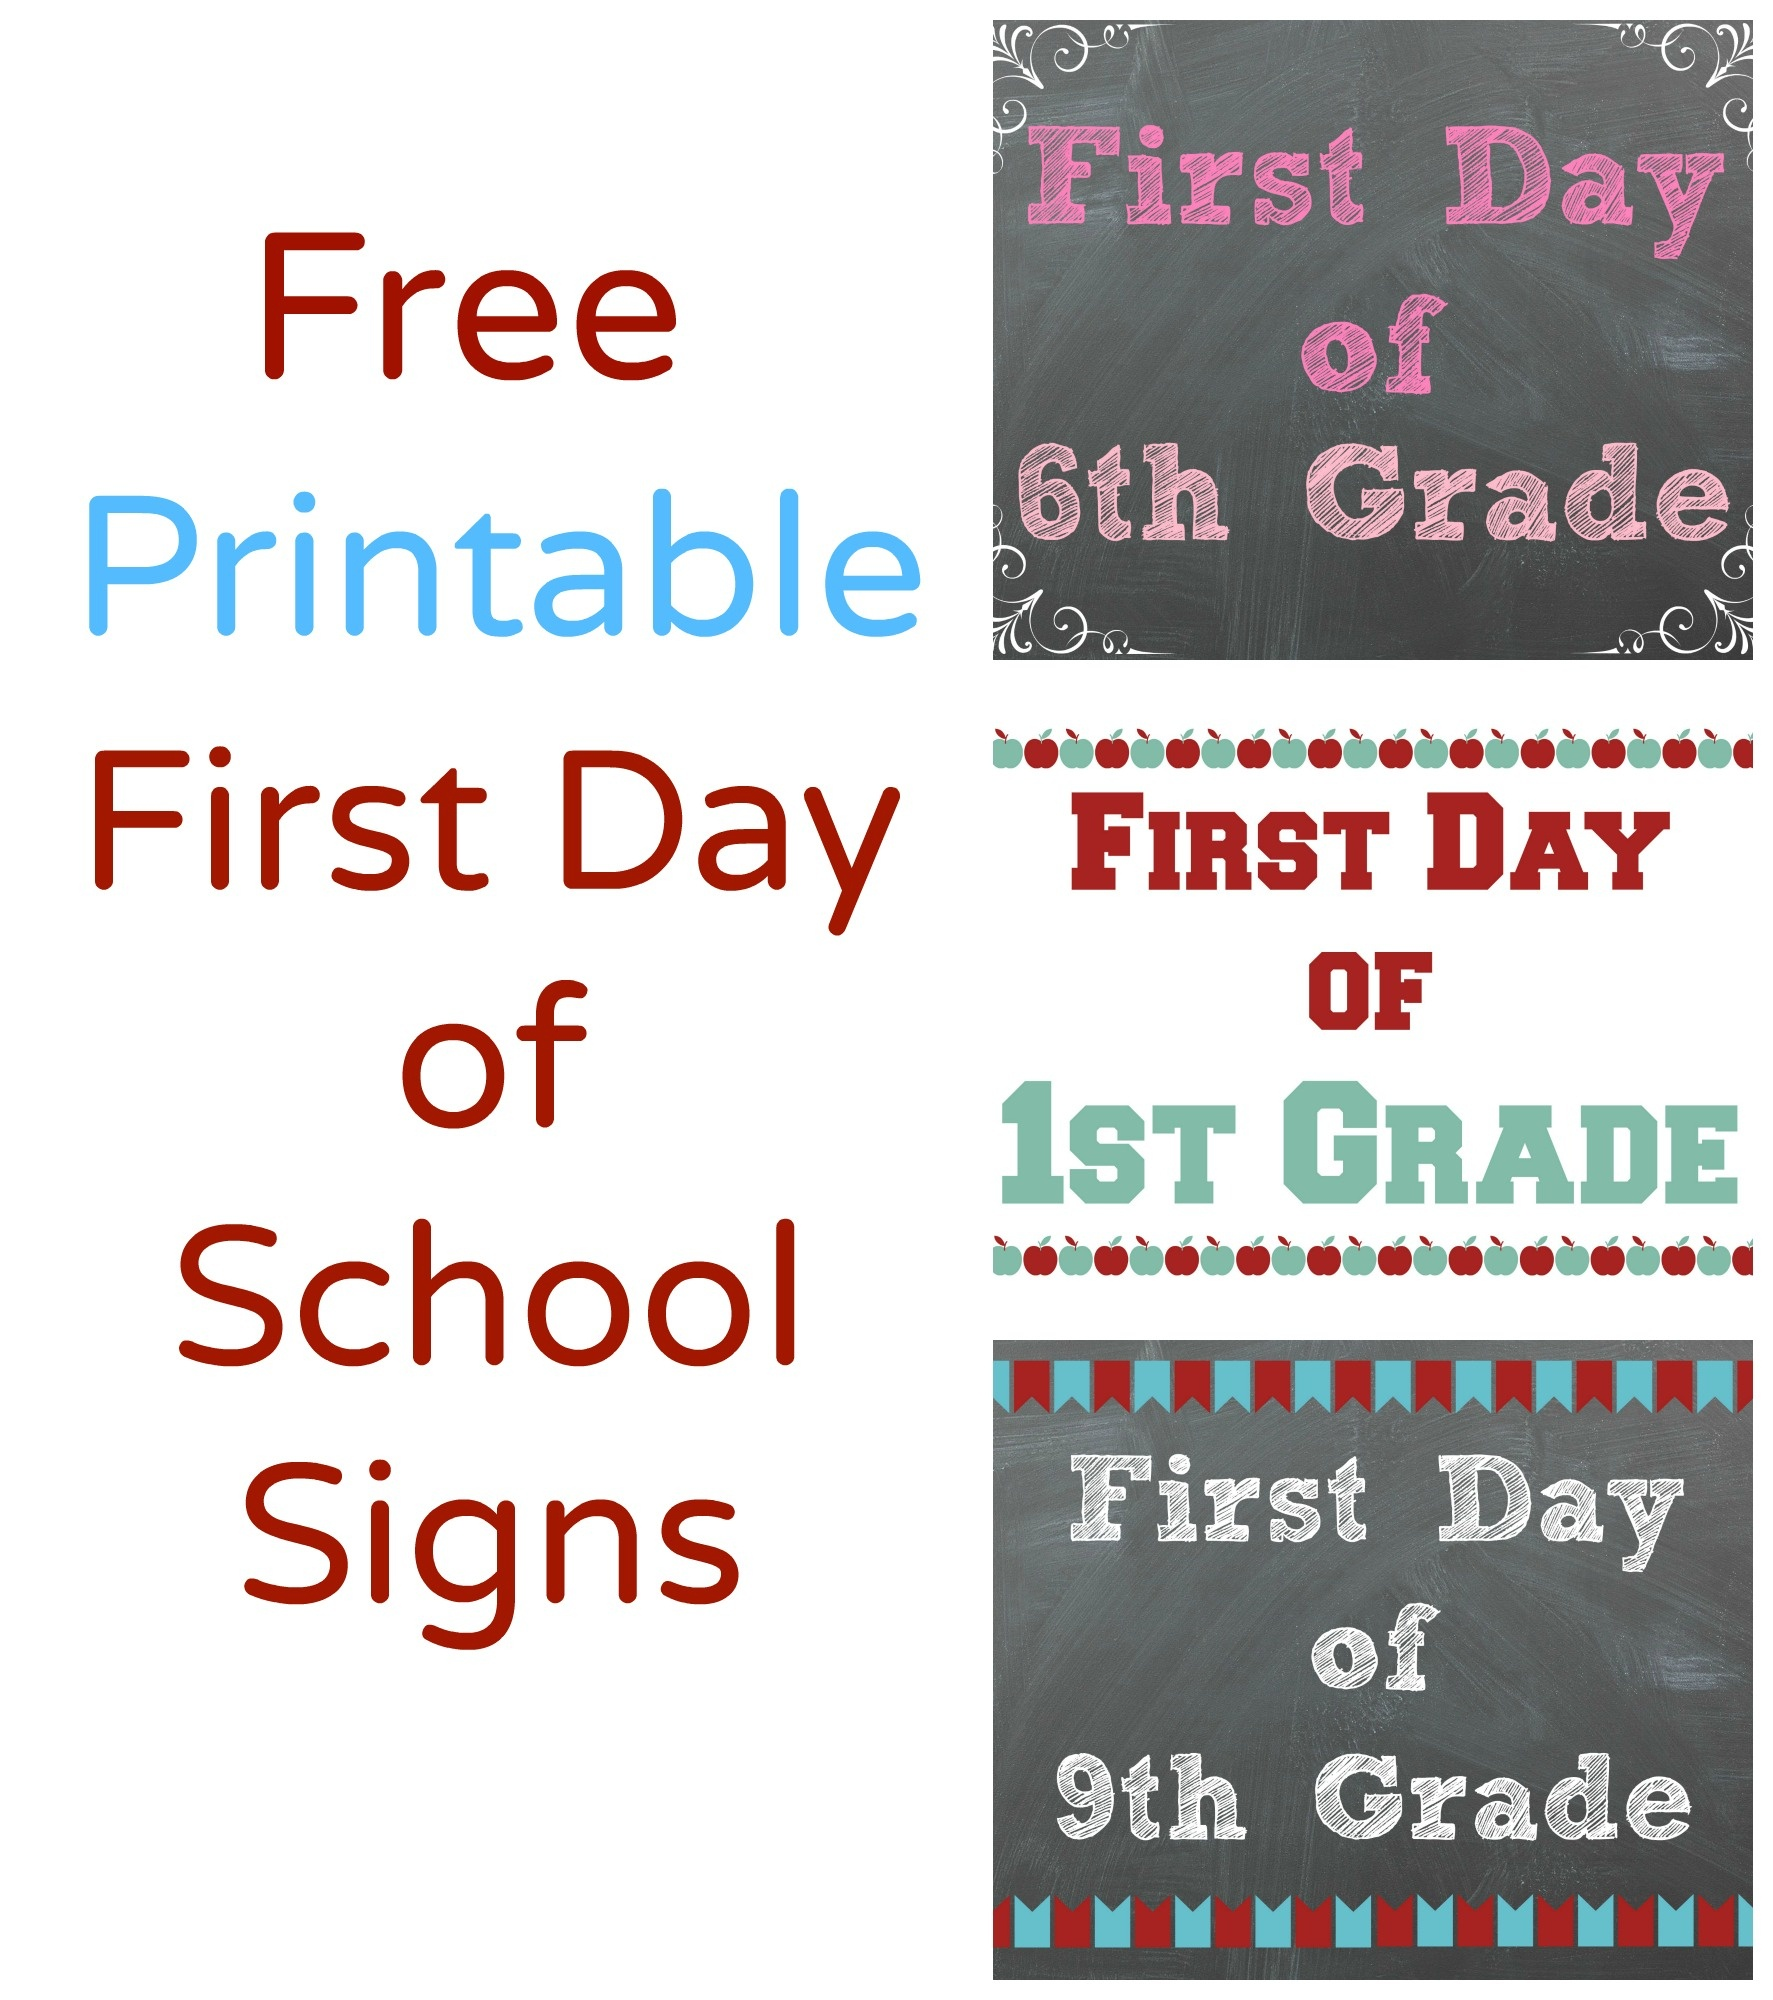 Free Printable First Day Of School Signs - Making It All Work - Free Printable First Day Of School Signs